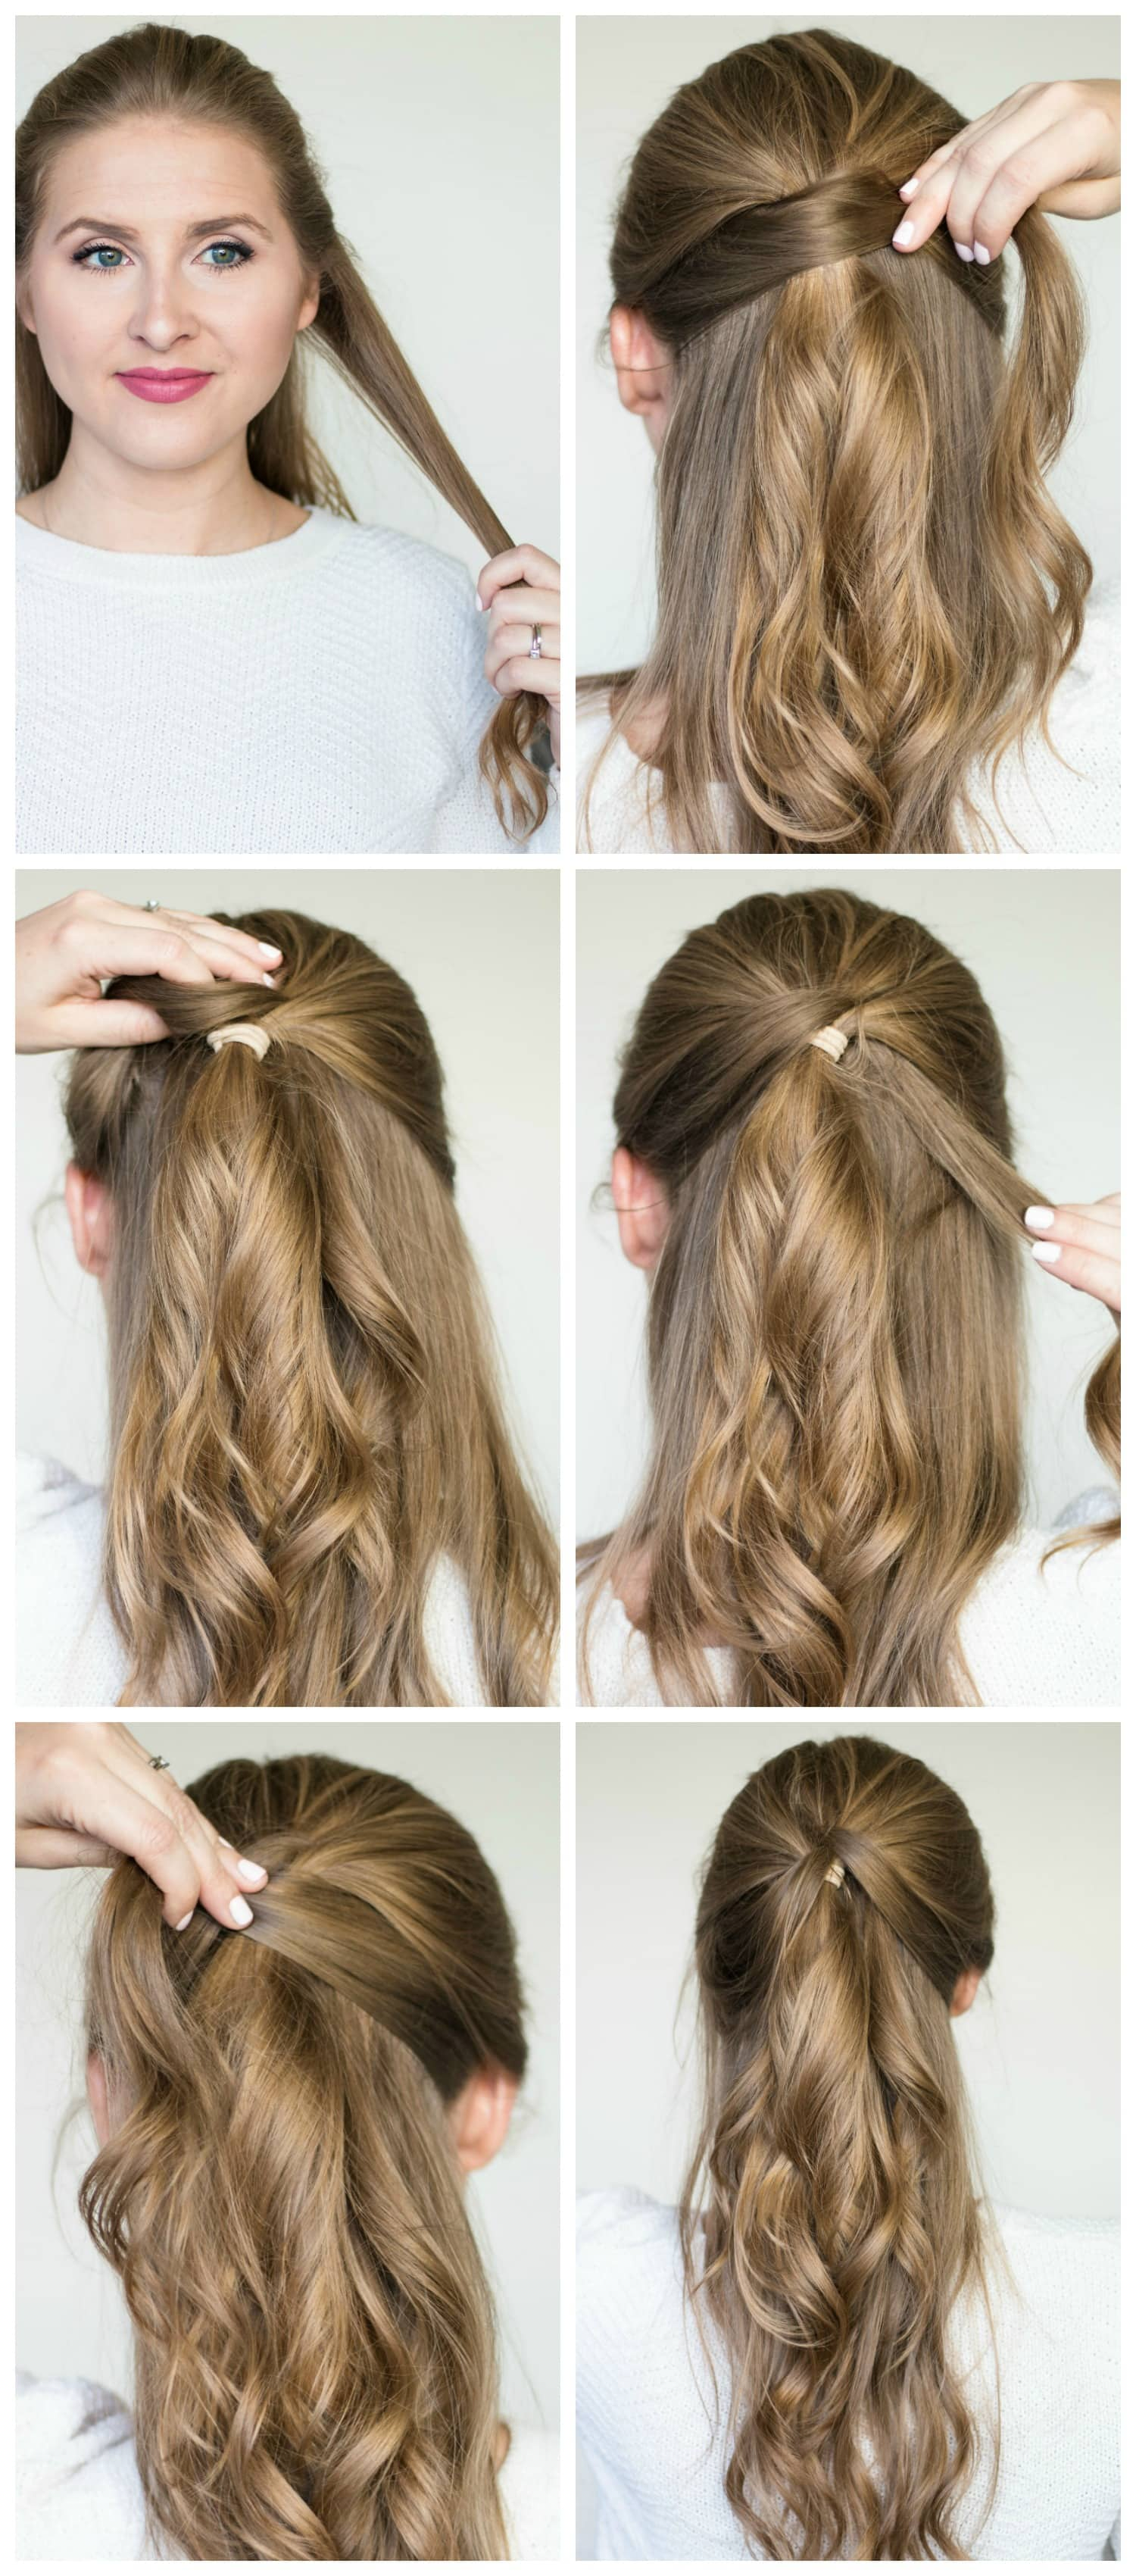 Quick & Easy Hairstyle Tutorials + Best Shampoo & Conditioner for Dry Hair